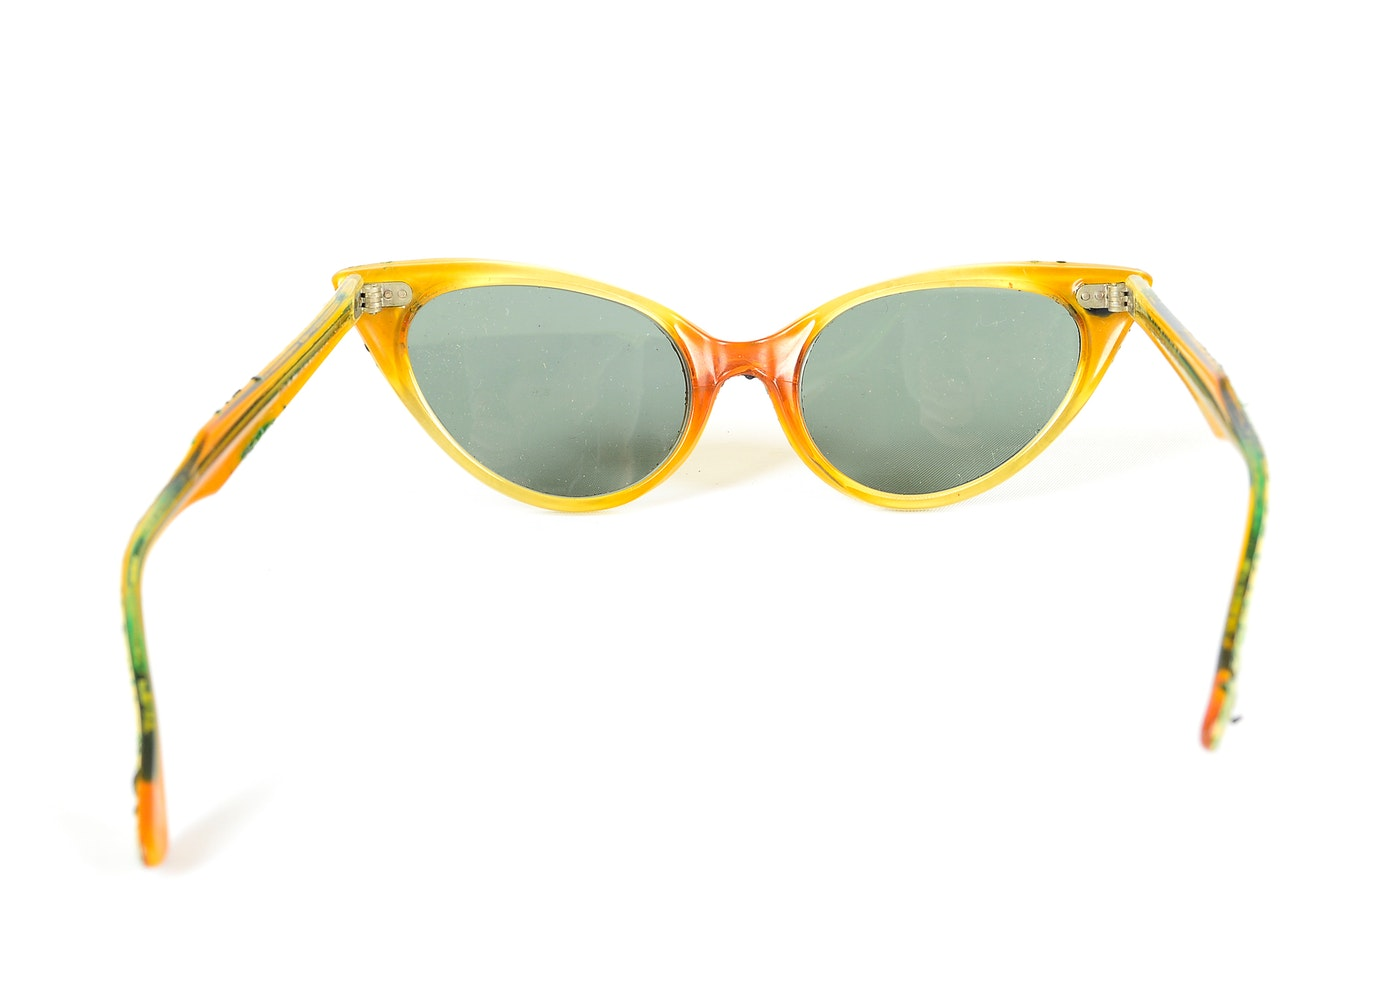 0b994142e11 White Ray Bans With Yellow Insides « Heritage Malta